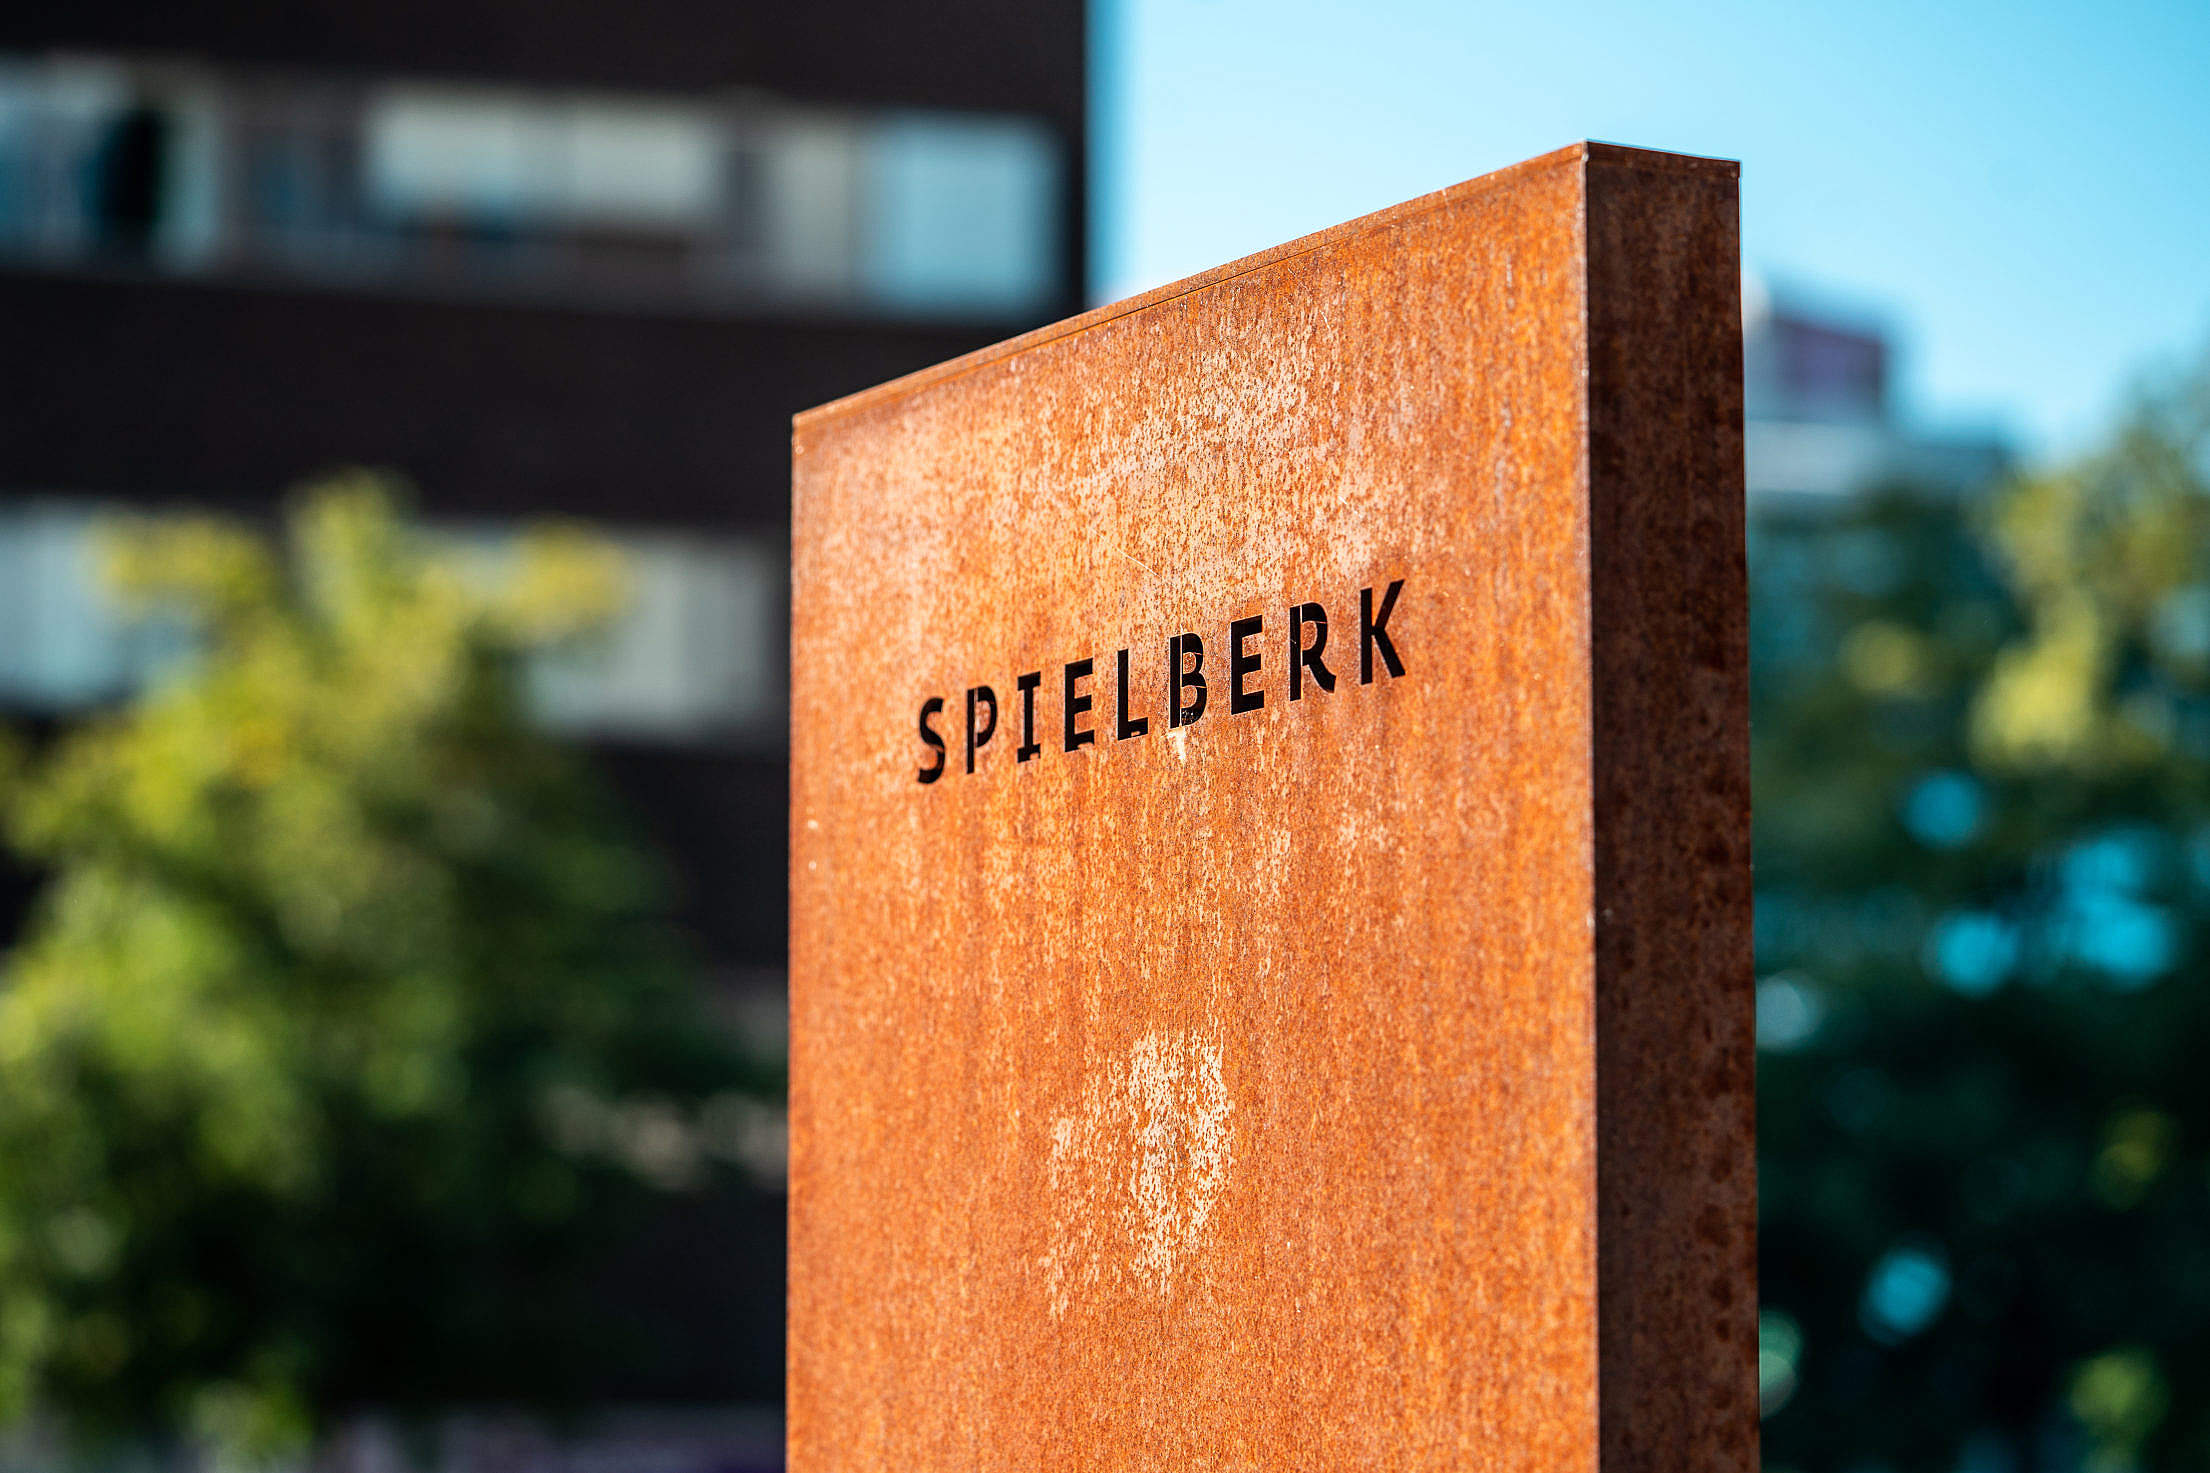 Spielberk Office Park, Brno Free Stock Photo